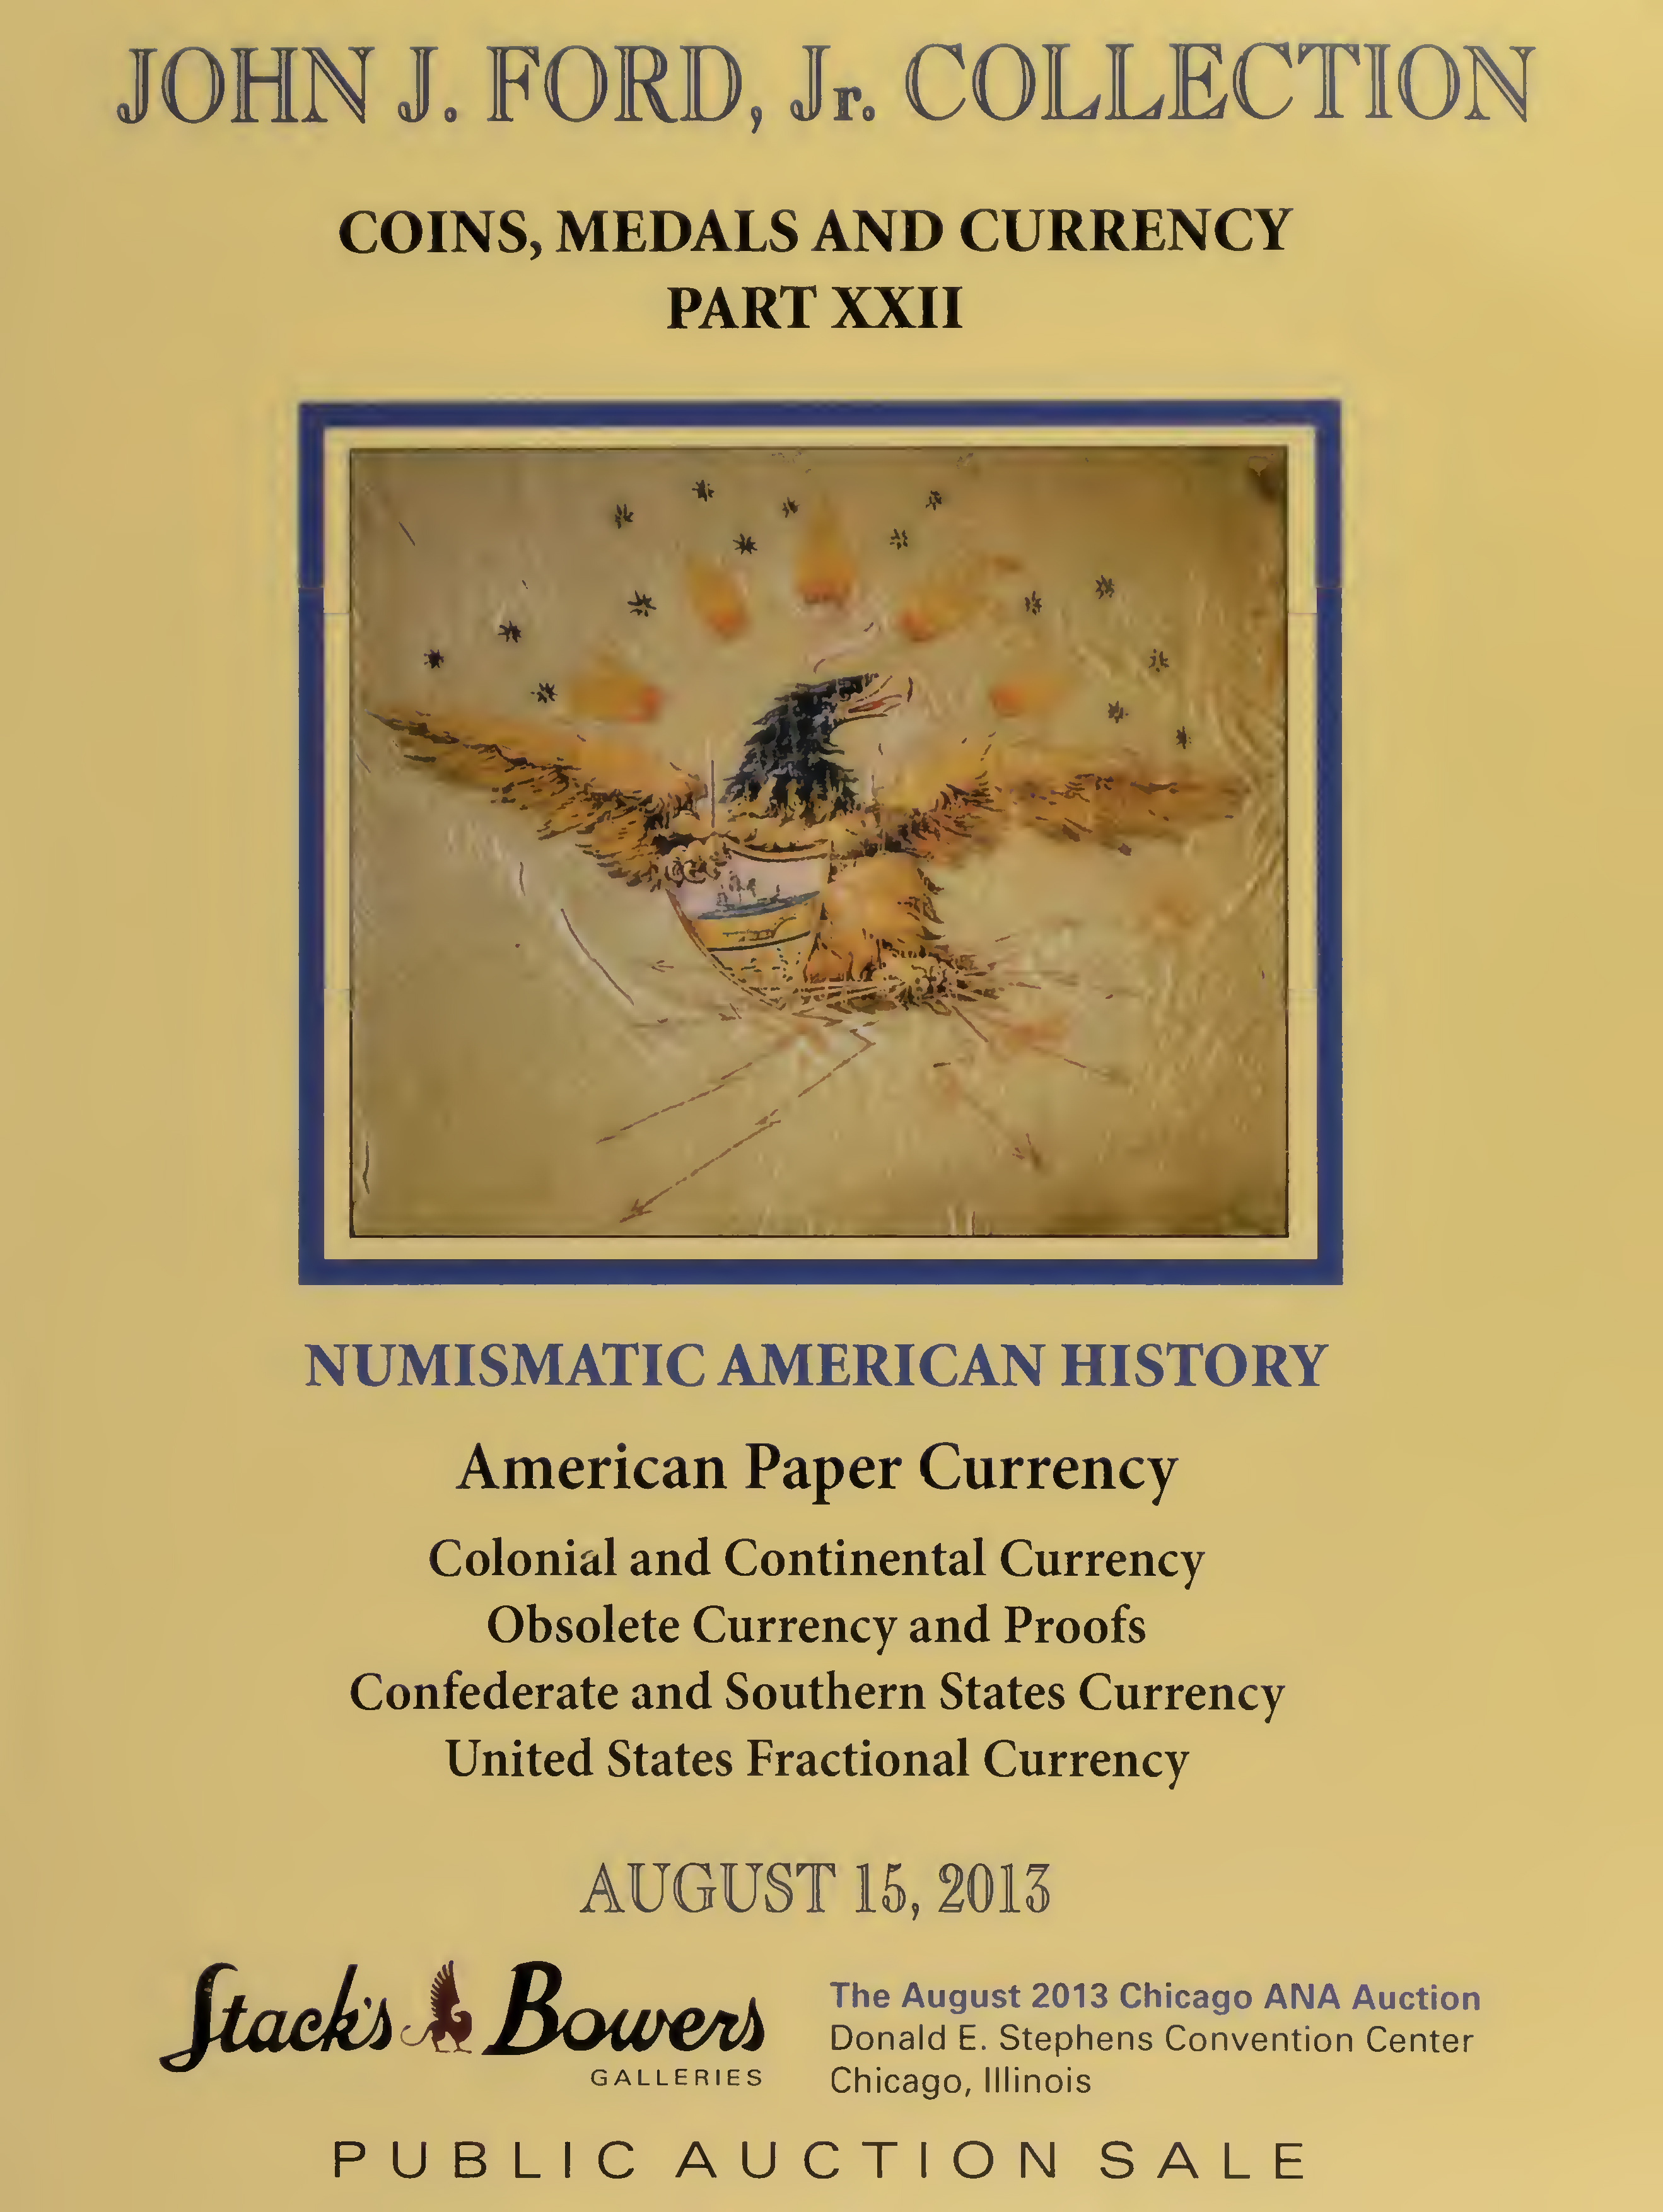 John J. Ford, Jr. Collection Coins, Medals and Currency Part XXII, Numismatic American History, American Paper Currency, Colonial and Continental Currency, Obsolete Currency and Proofs, Confederate and Southern States Currency, United States Fractional Currency